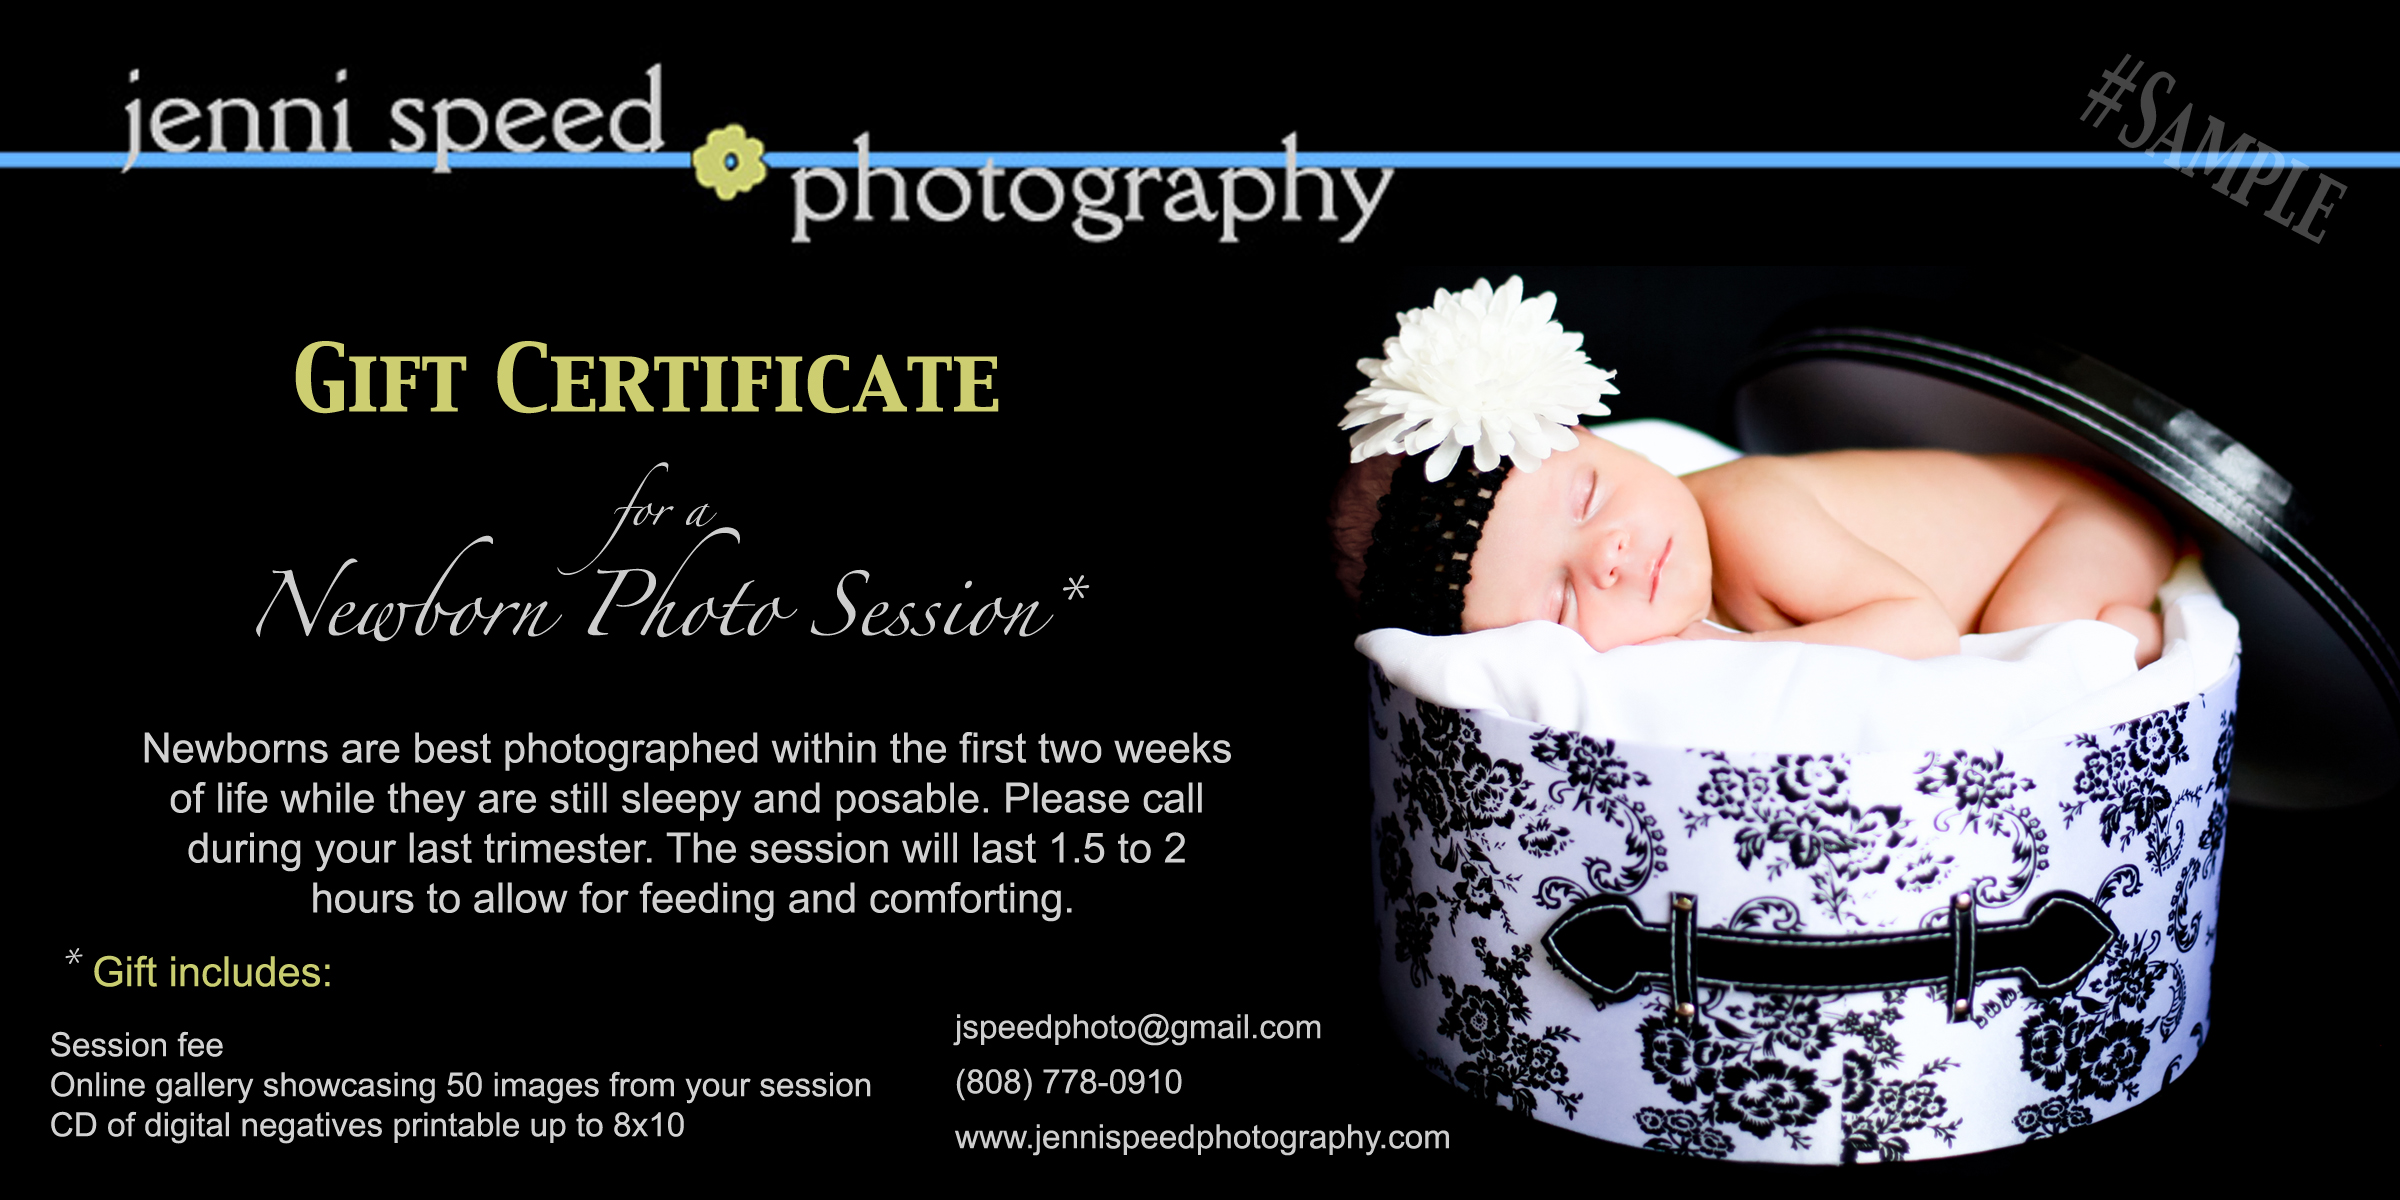 gift certificate sample nb jenni speed photography gift certificate sample nb